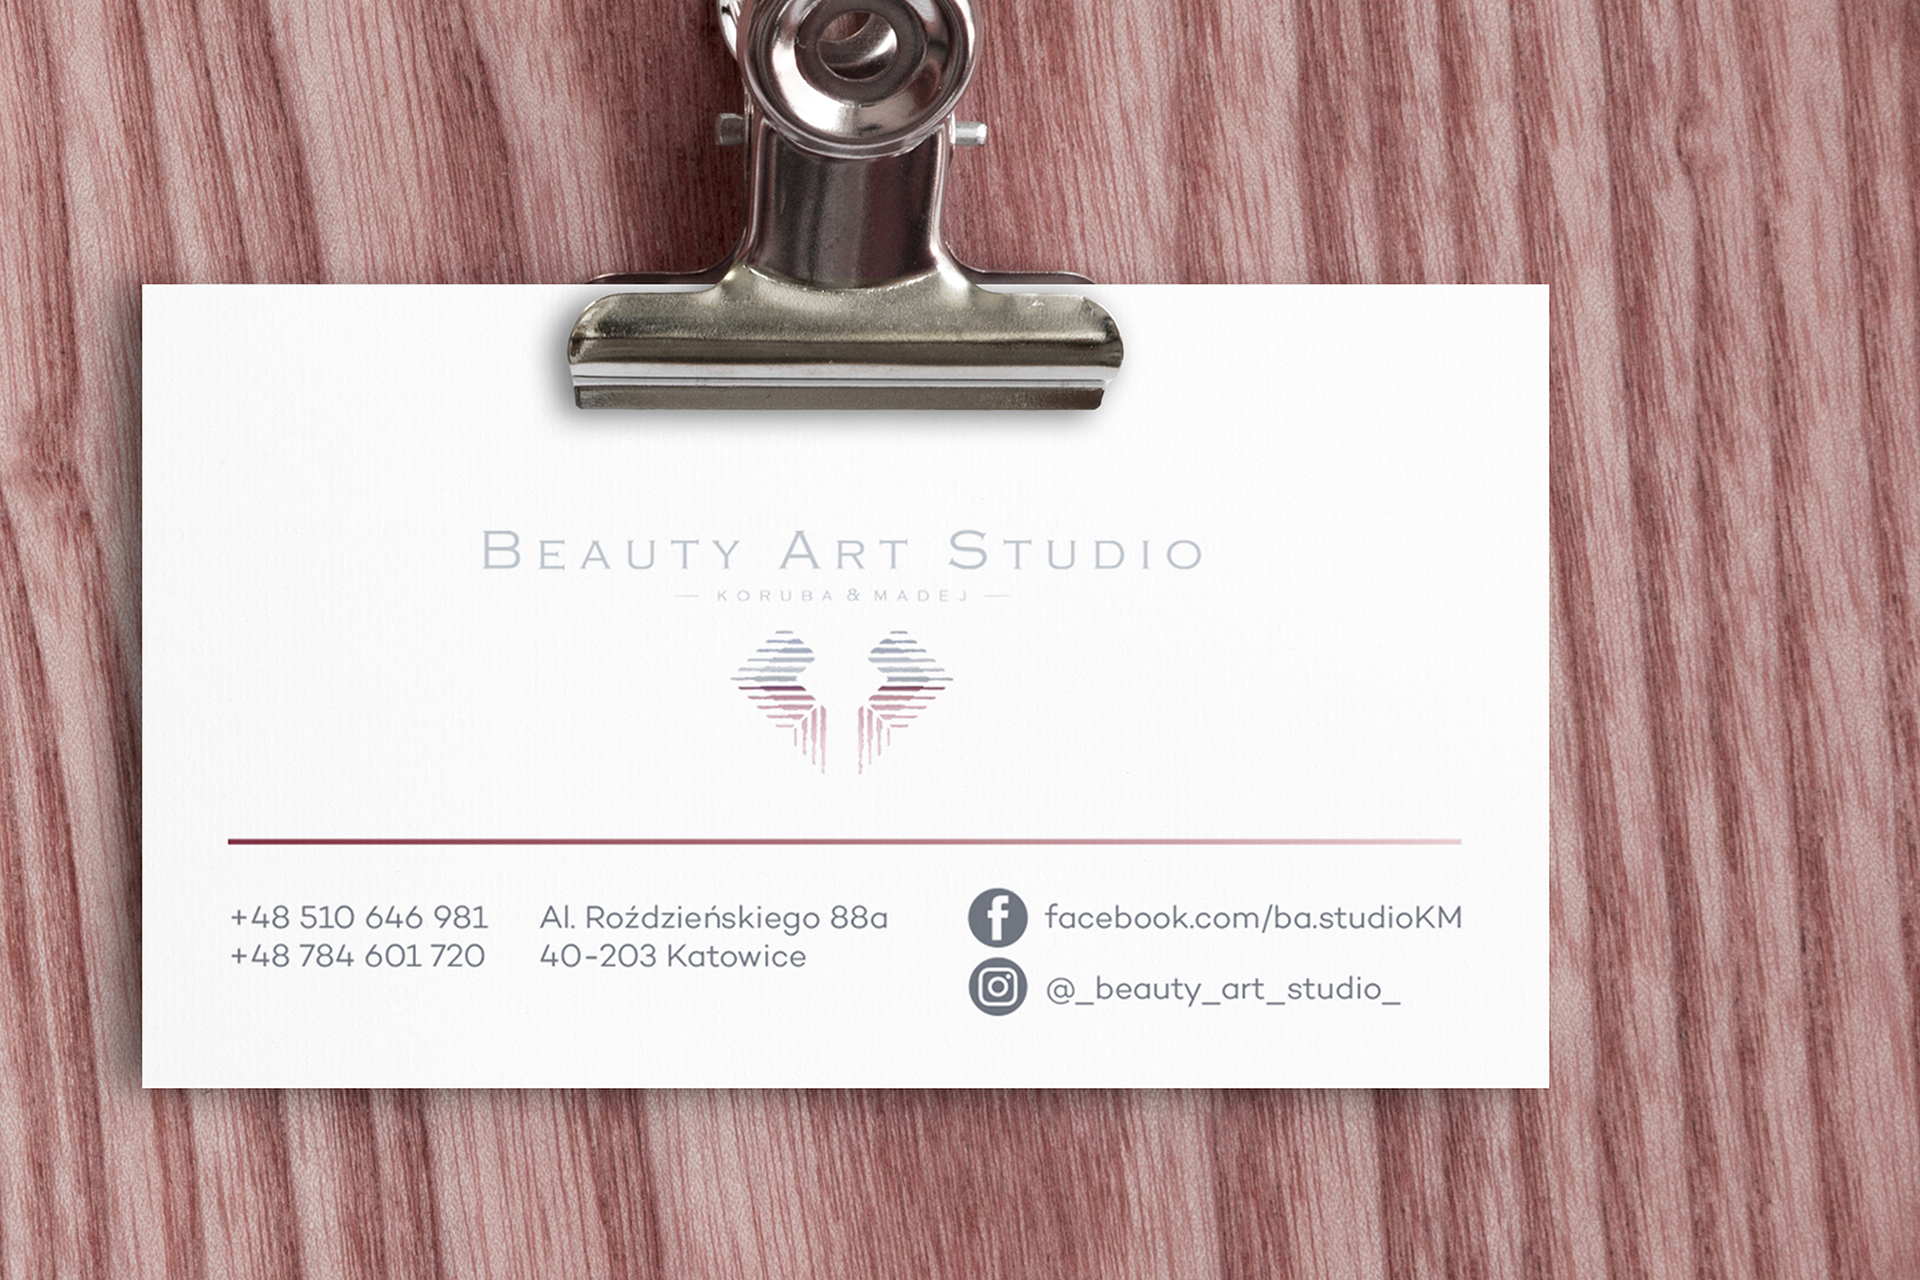 Beauty Art Studio